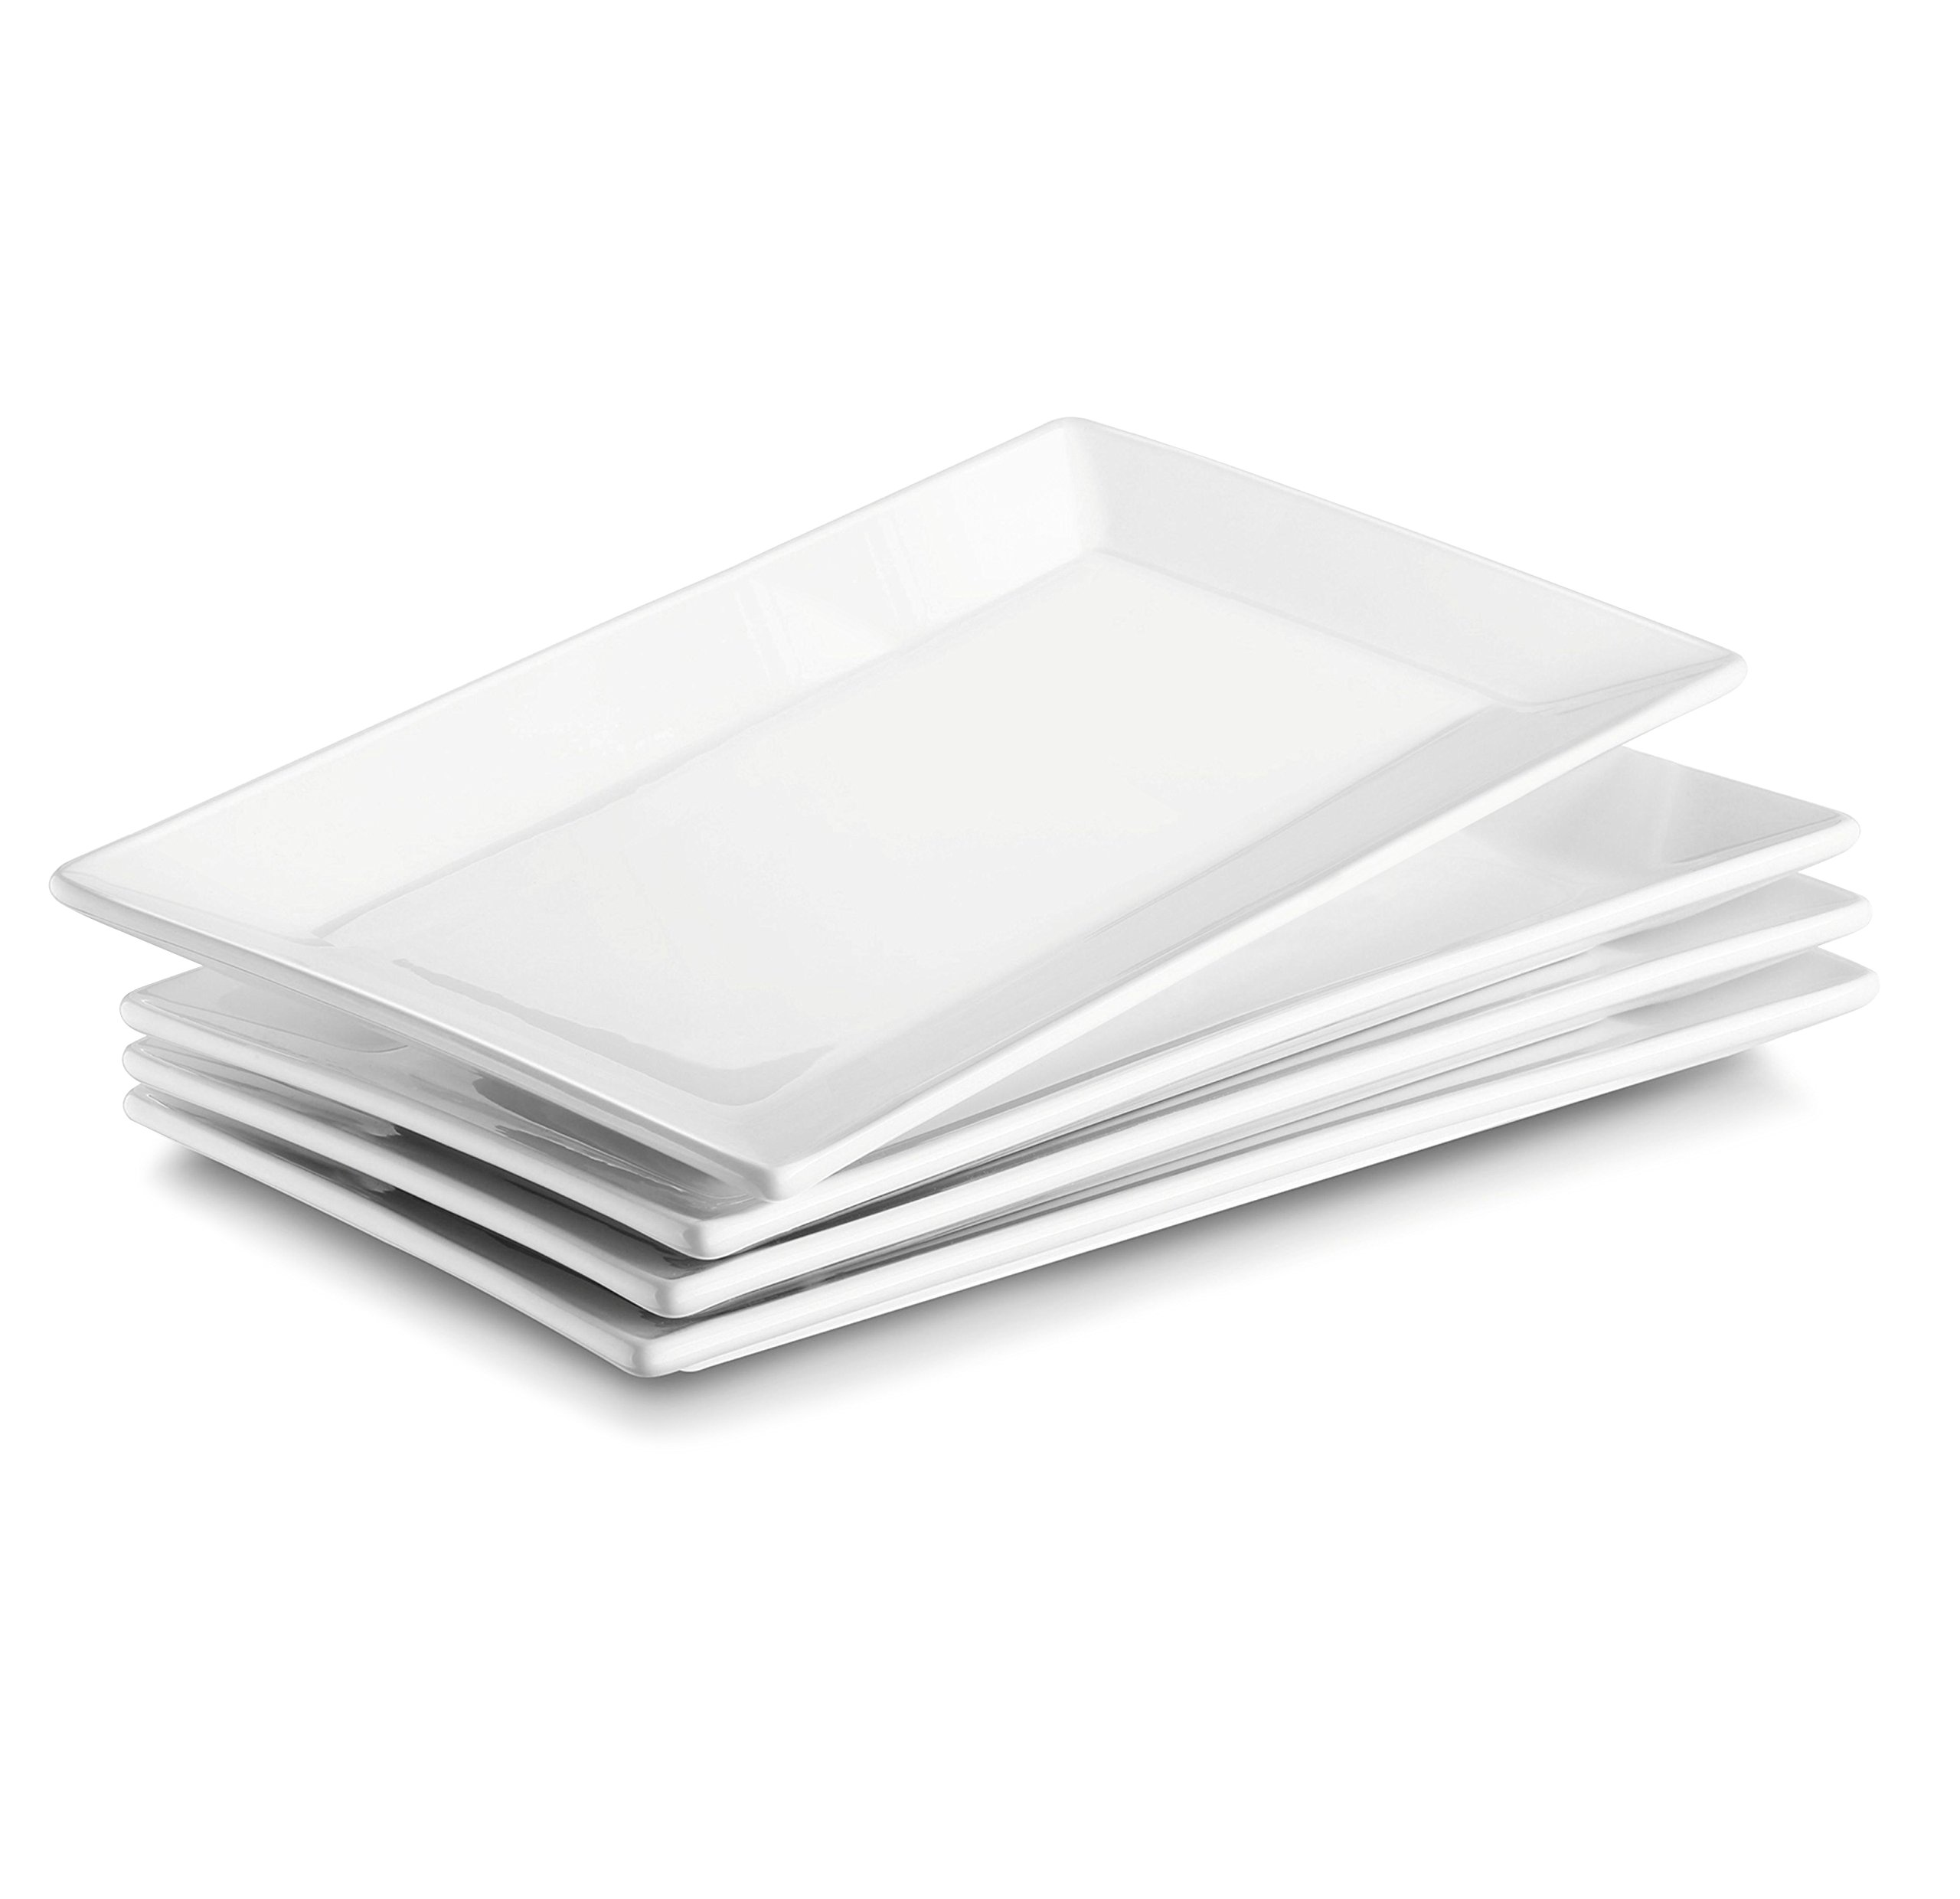 DOWAN 9.7-Inch Porcelain Serving Platters/Plates - Set of 4